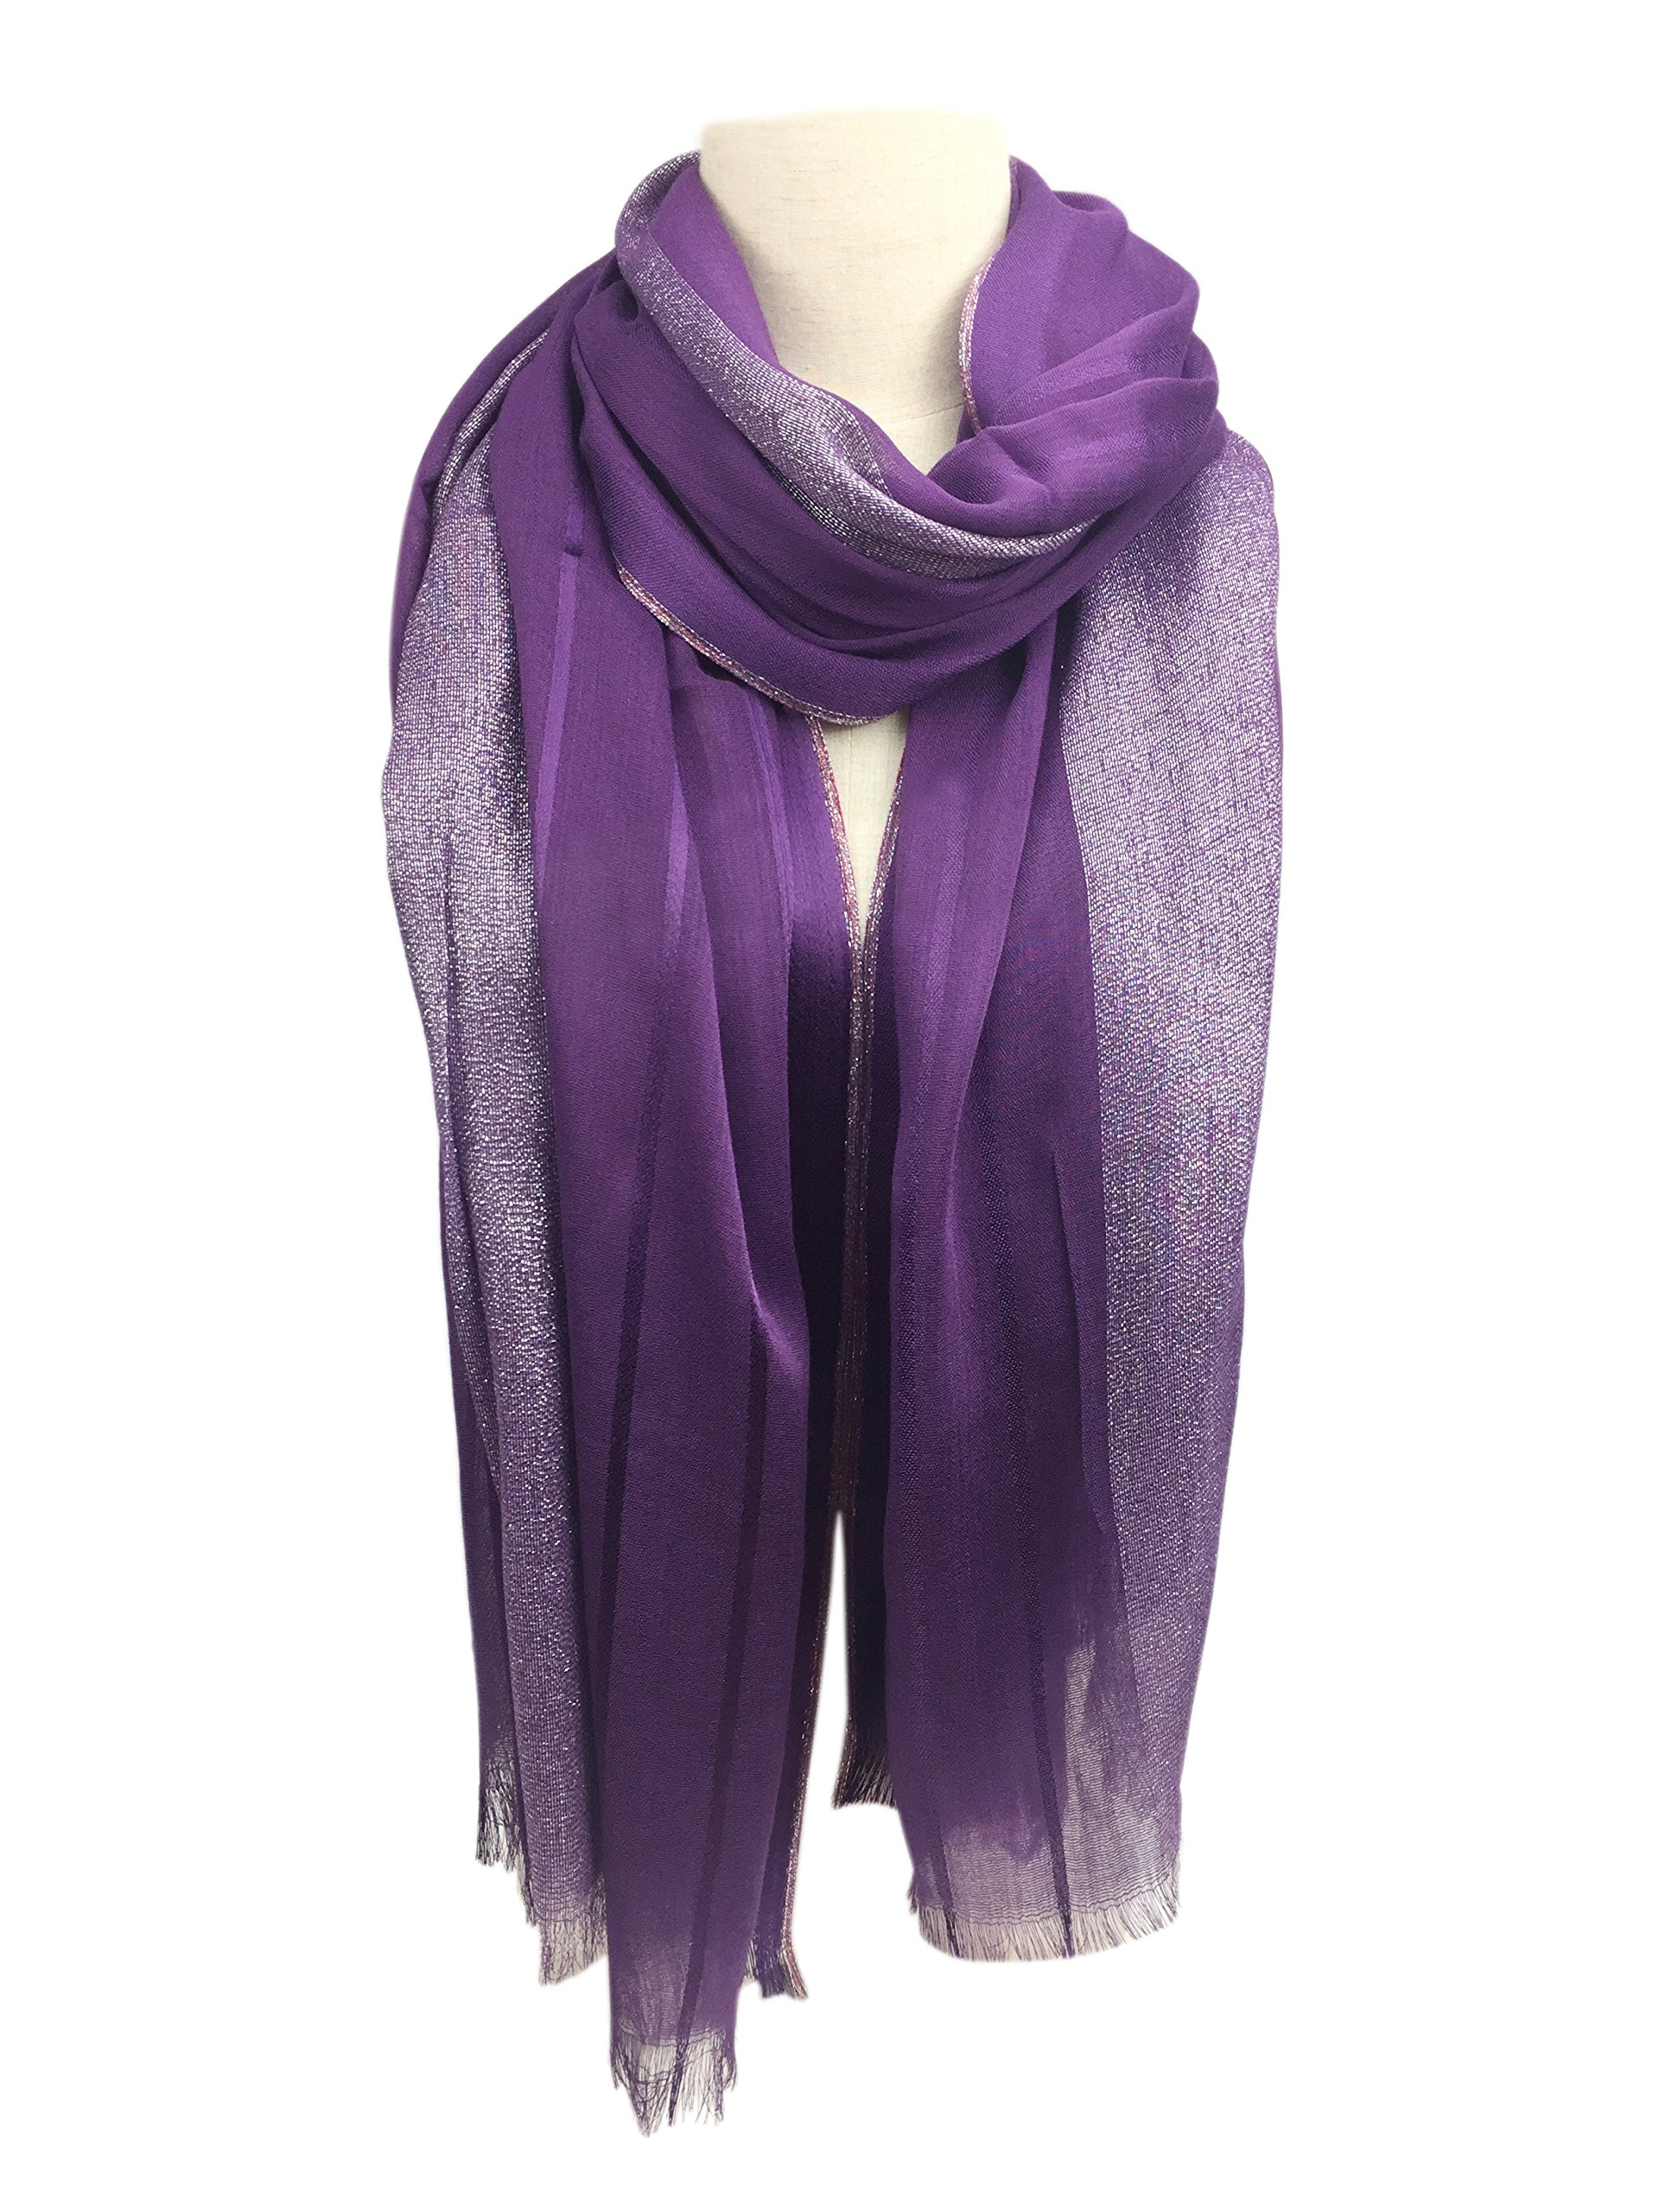 YOUR SMILE Women's Lightweight Glitter Color mixture Print Shawl Scarf For Spring Season (Purple)